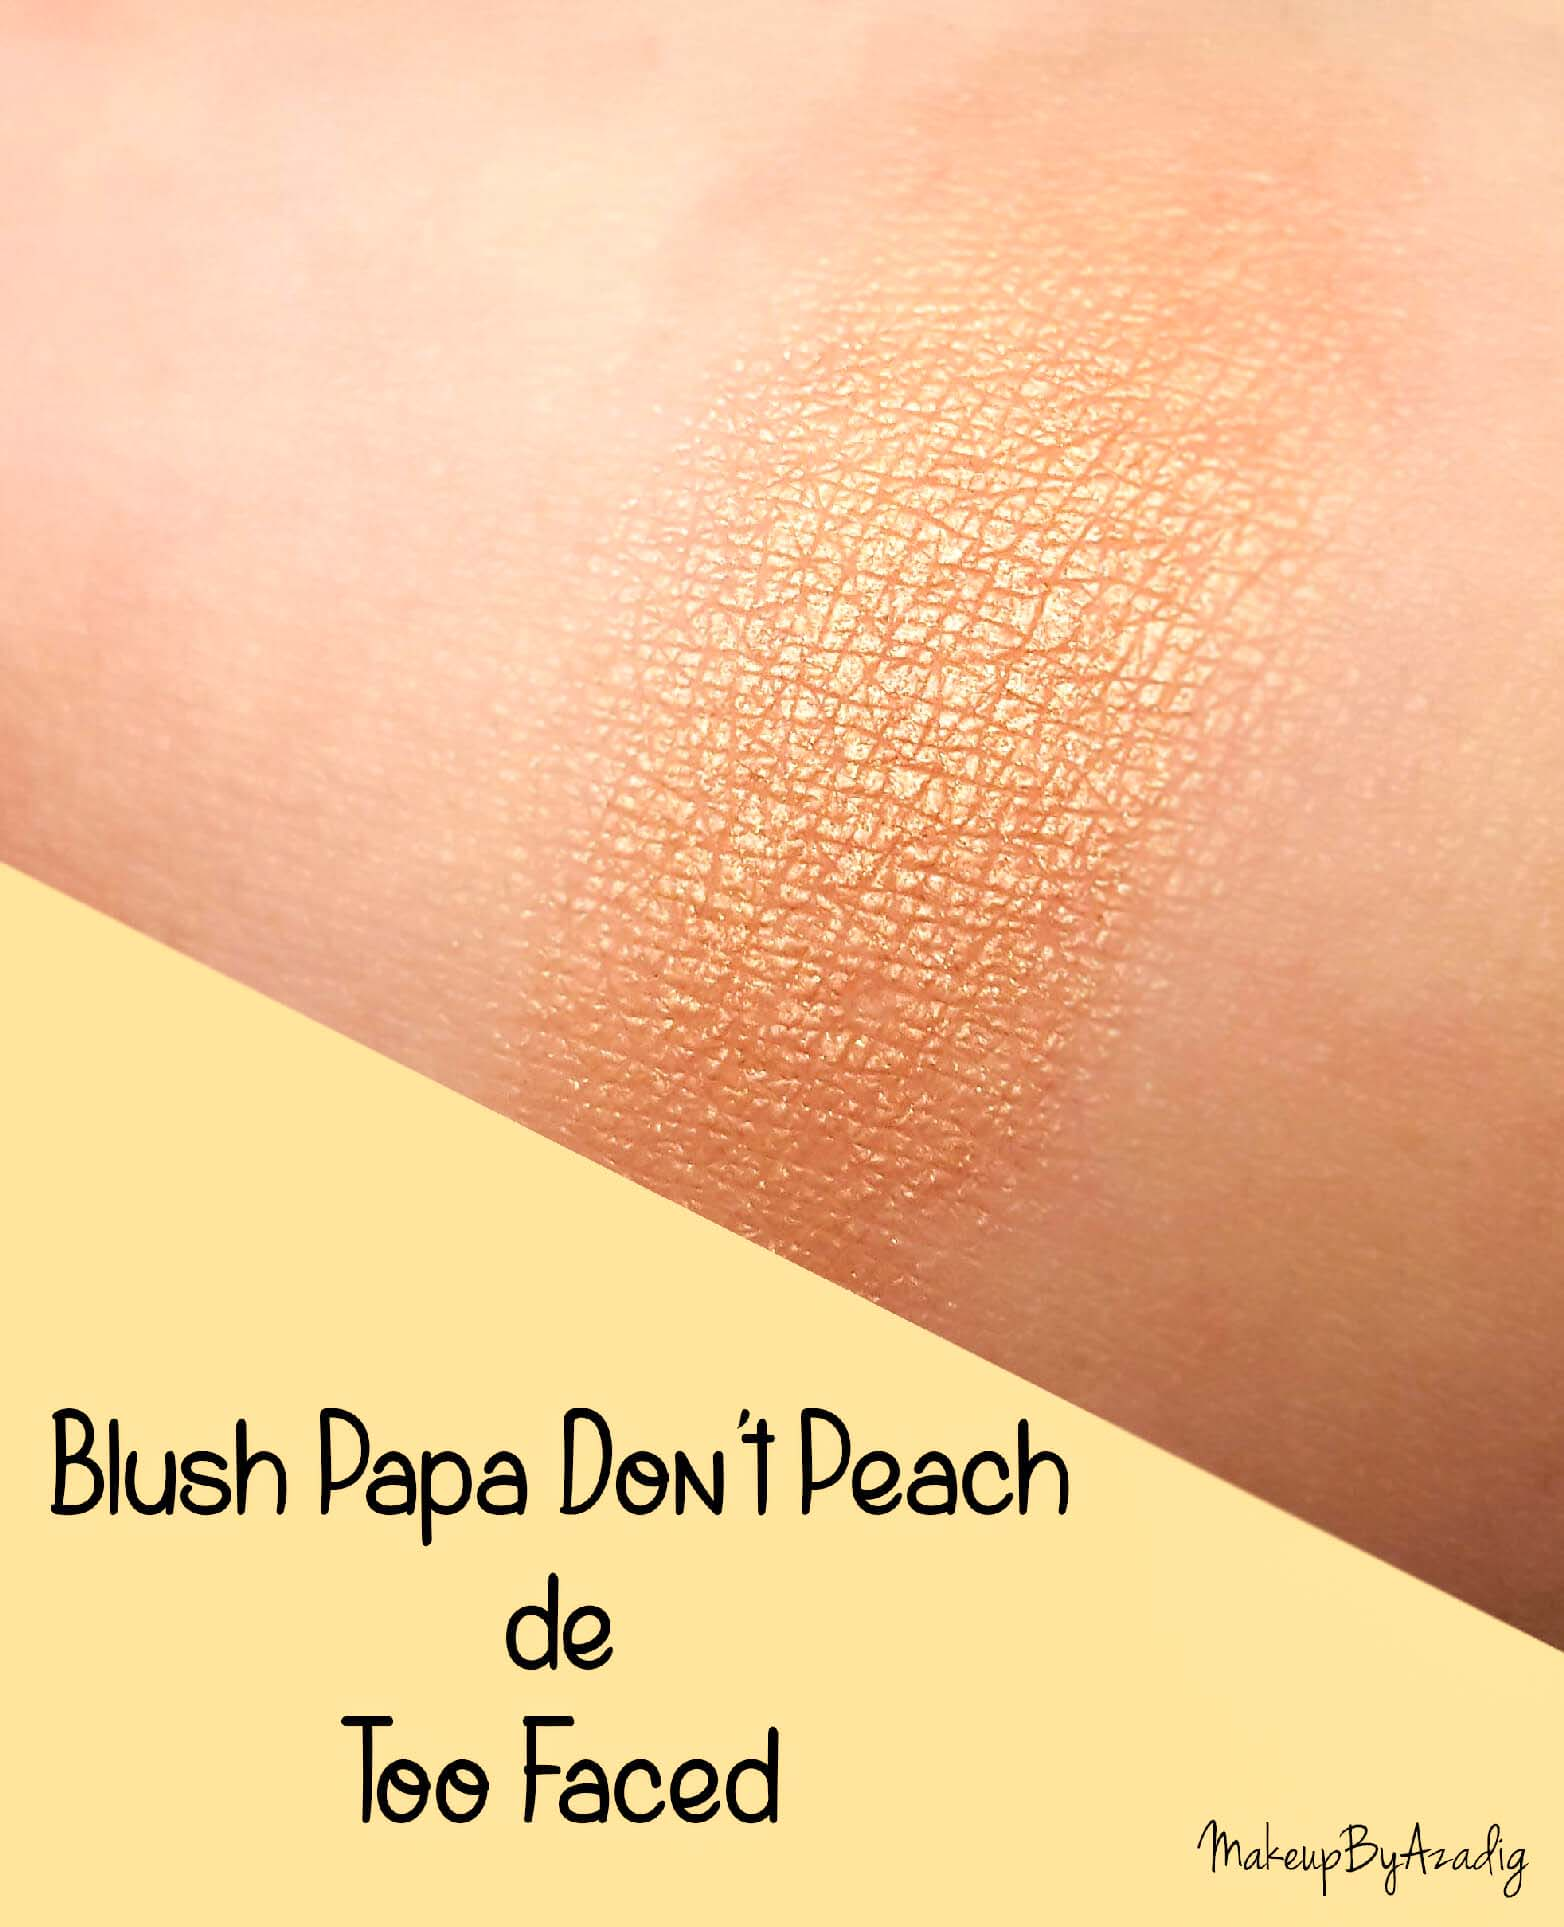 nouveau-blush-papa-dont-peach-too-faced-sephora-ete-printemps-paris-sweet-peach-swatch-avis-makeupbyazadig-swatches - copie-2